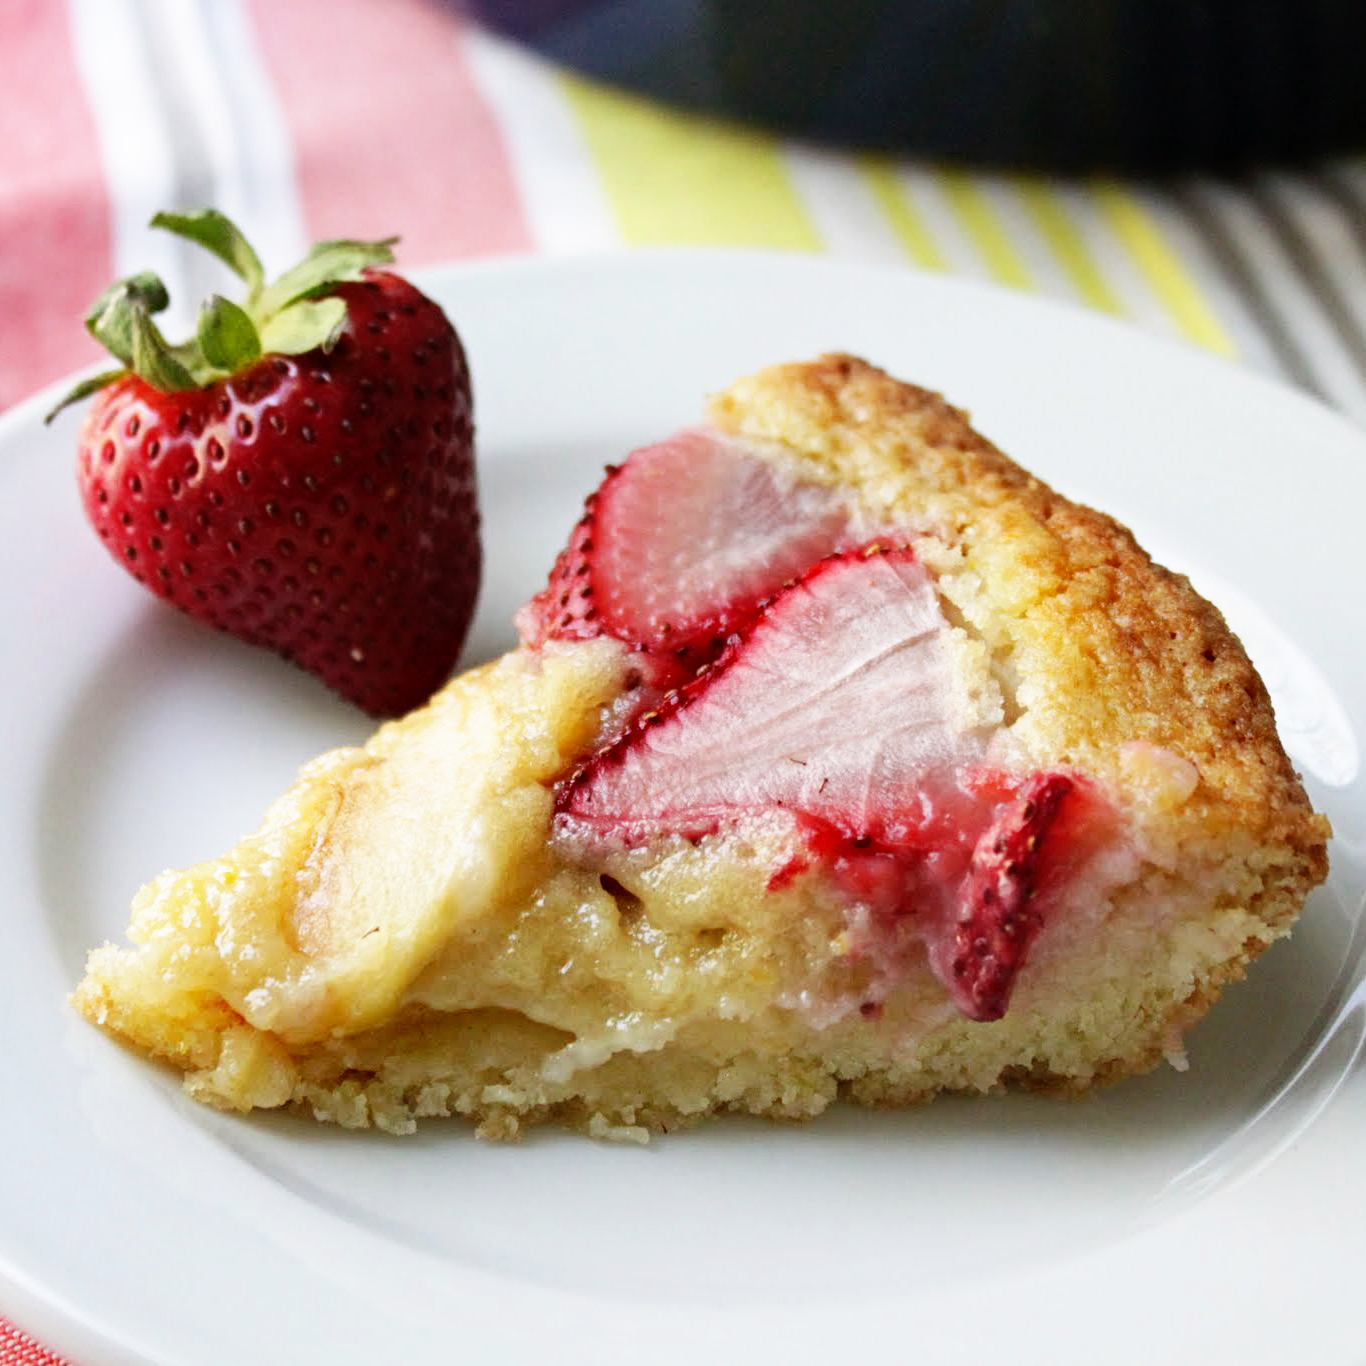 Strawberry Torte Recipes Cake Ideas and Designs